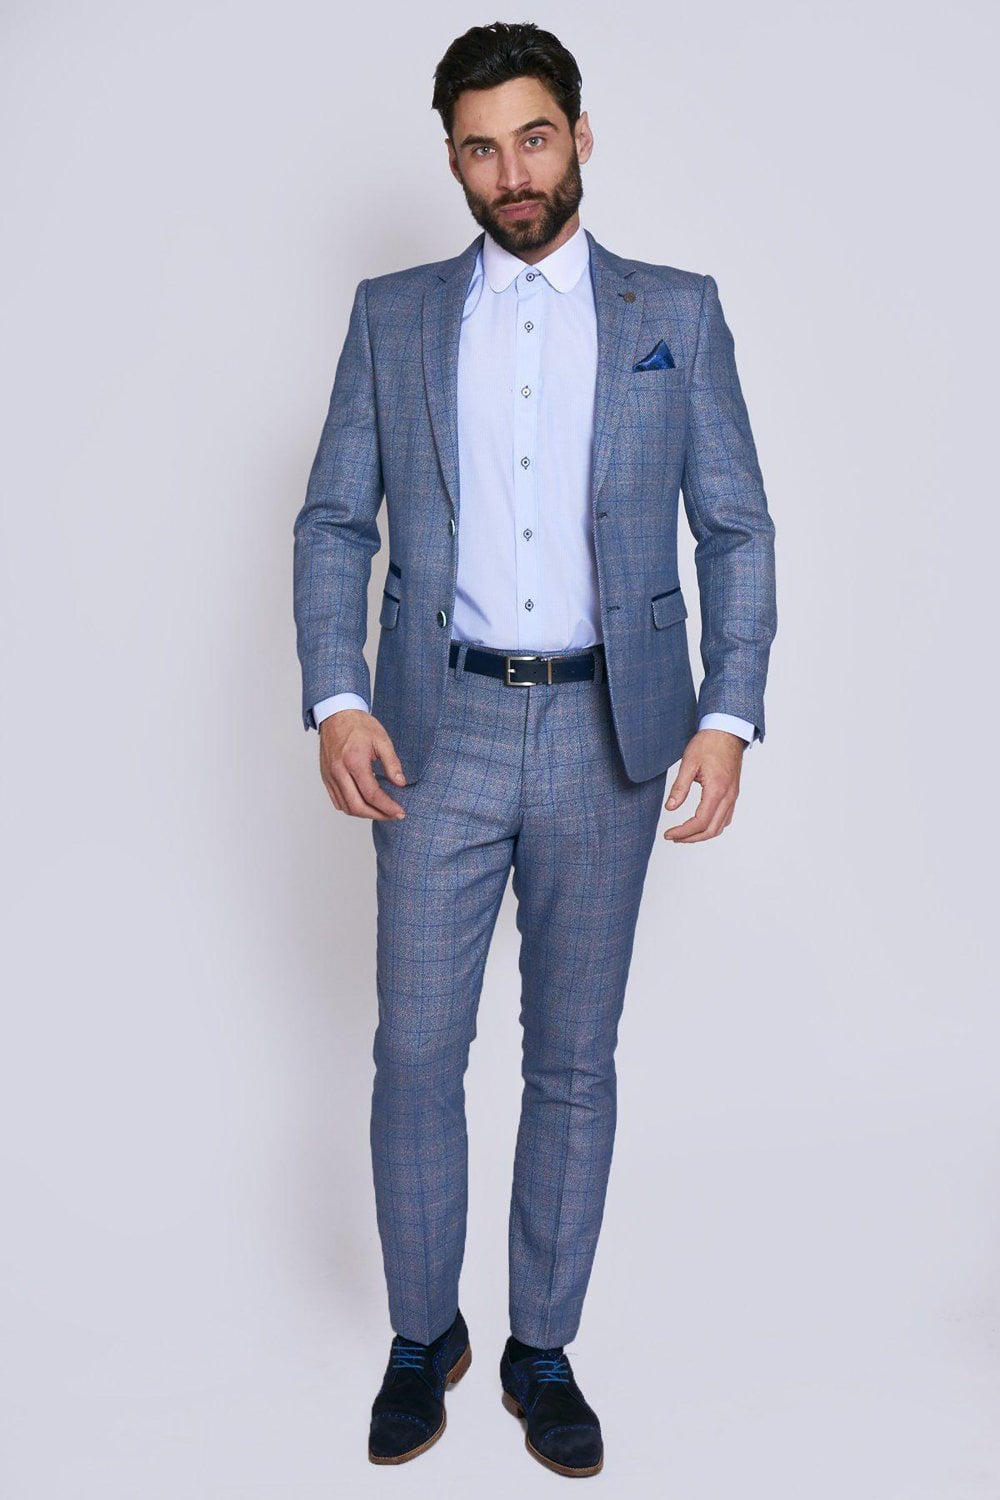 Harry Blue Tweed Two Piece Suit Suits From Fallen Hero Uk